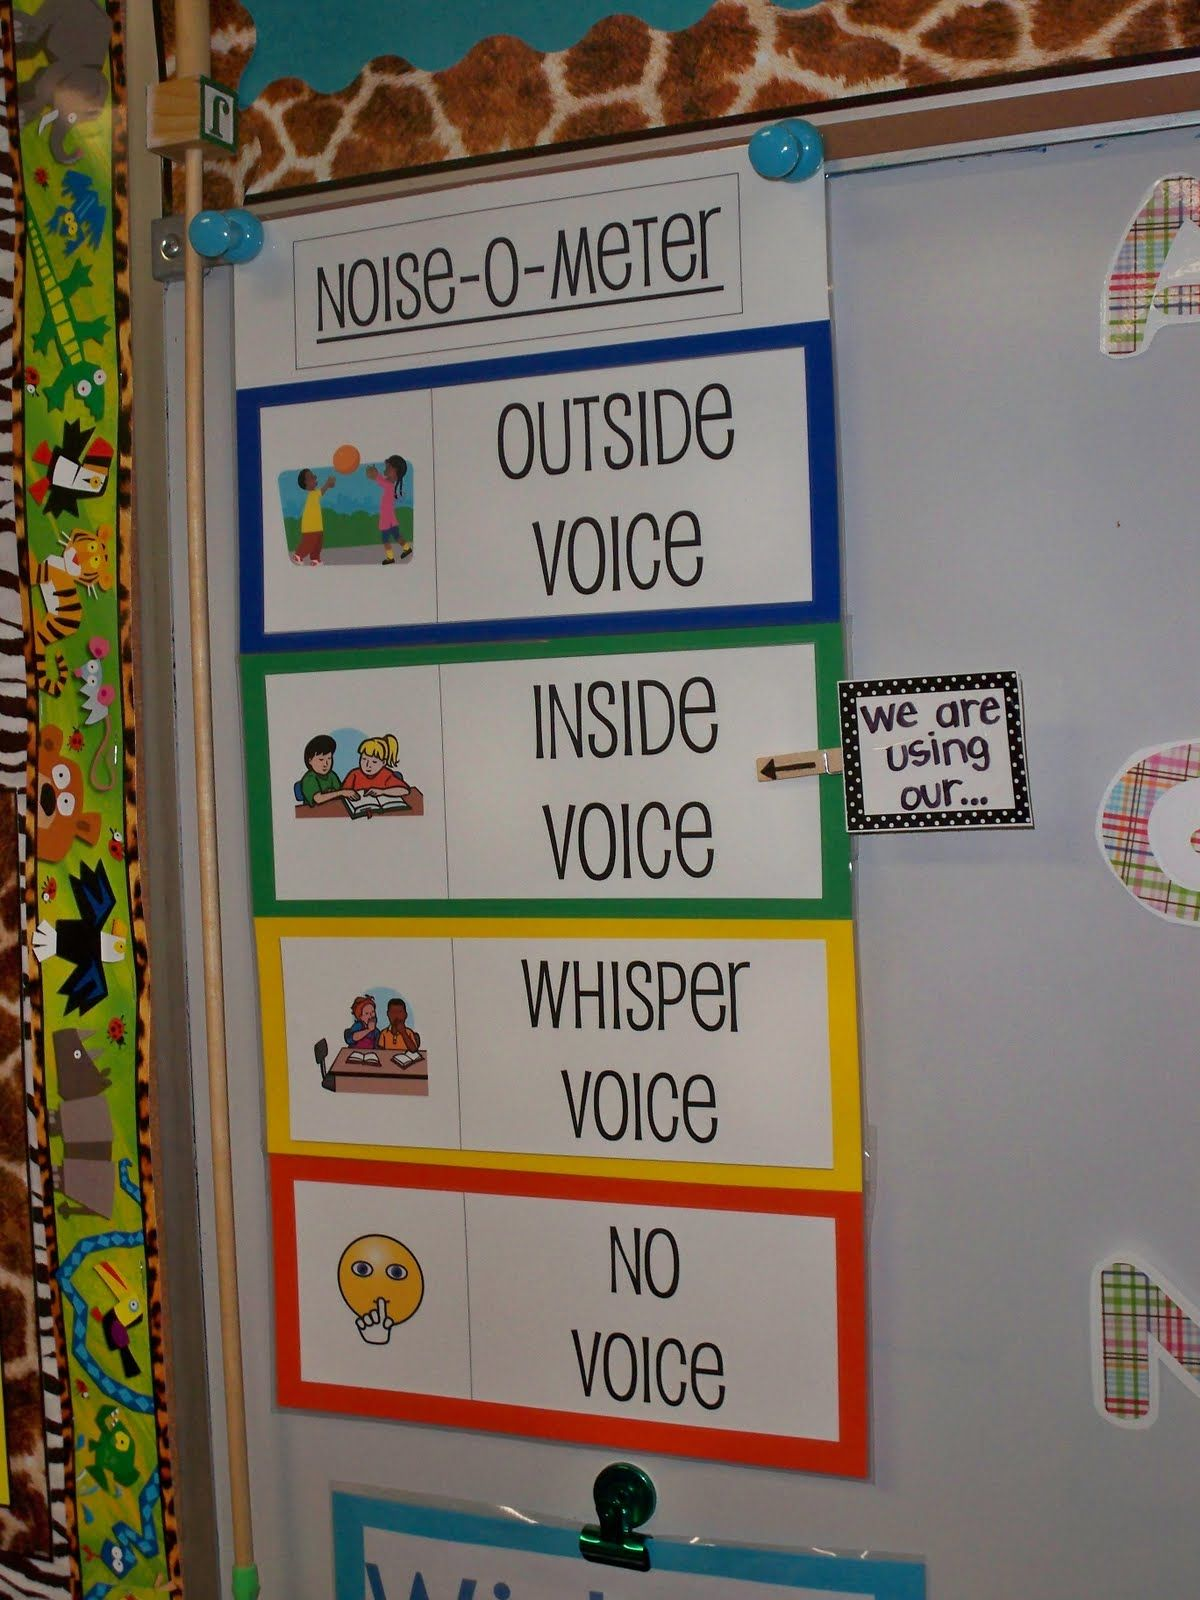 Noise-O-Meter..so great!